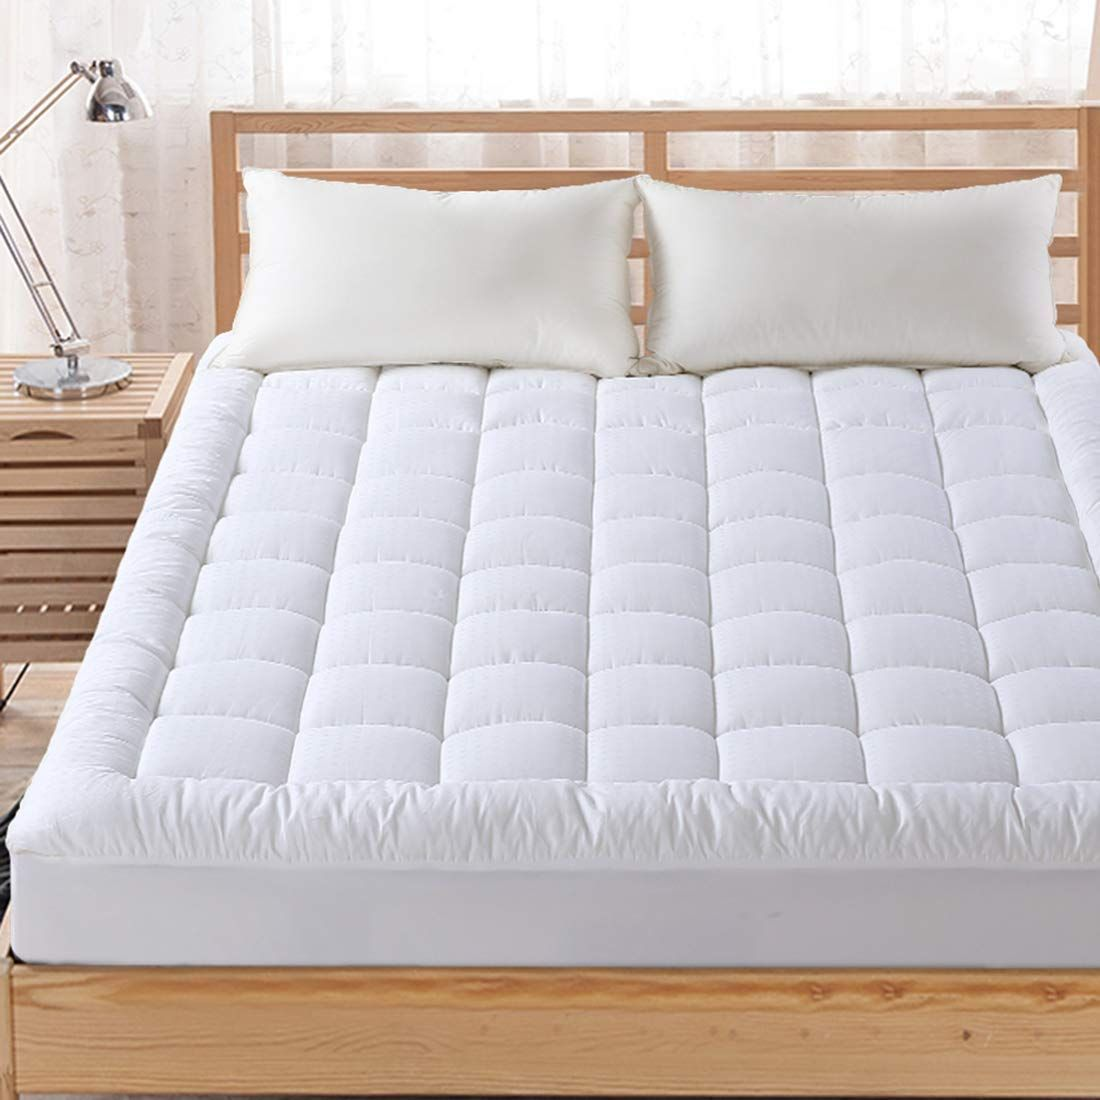 Top 10 Best Twin Xl Mattress Topper Reviews In 2020 In 2020 Pillow Top Mattress Pillow Top Mattress Pad Cover